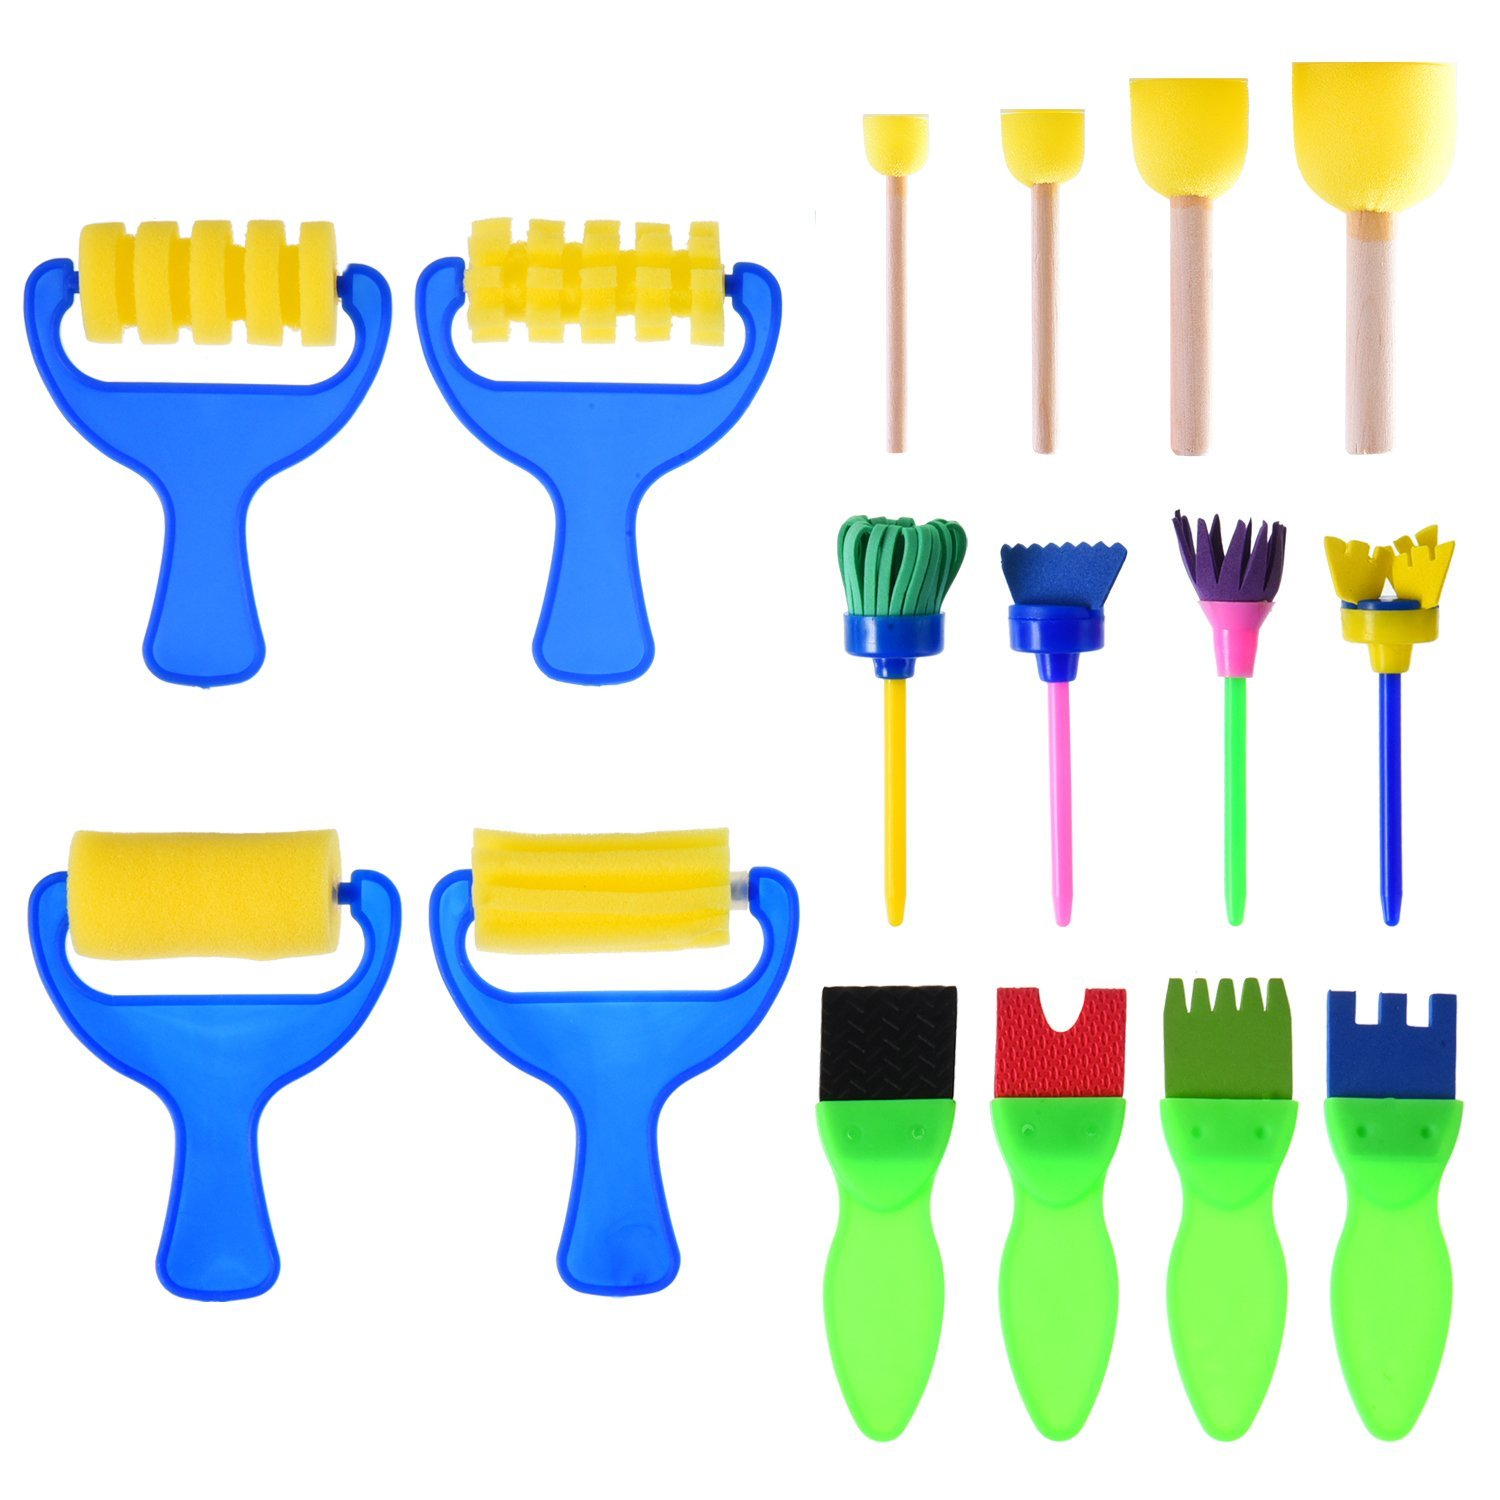 16 Pieces Sponge Painting Brushes Kids Painting Kits Early Learning Foam Brushes for DIY Art Crafts|painting brush|foam brush|sponge painting brush - title=